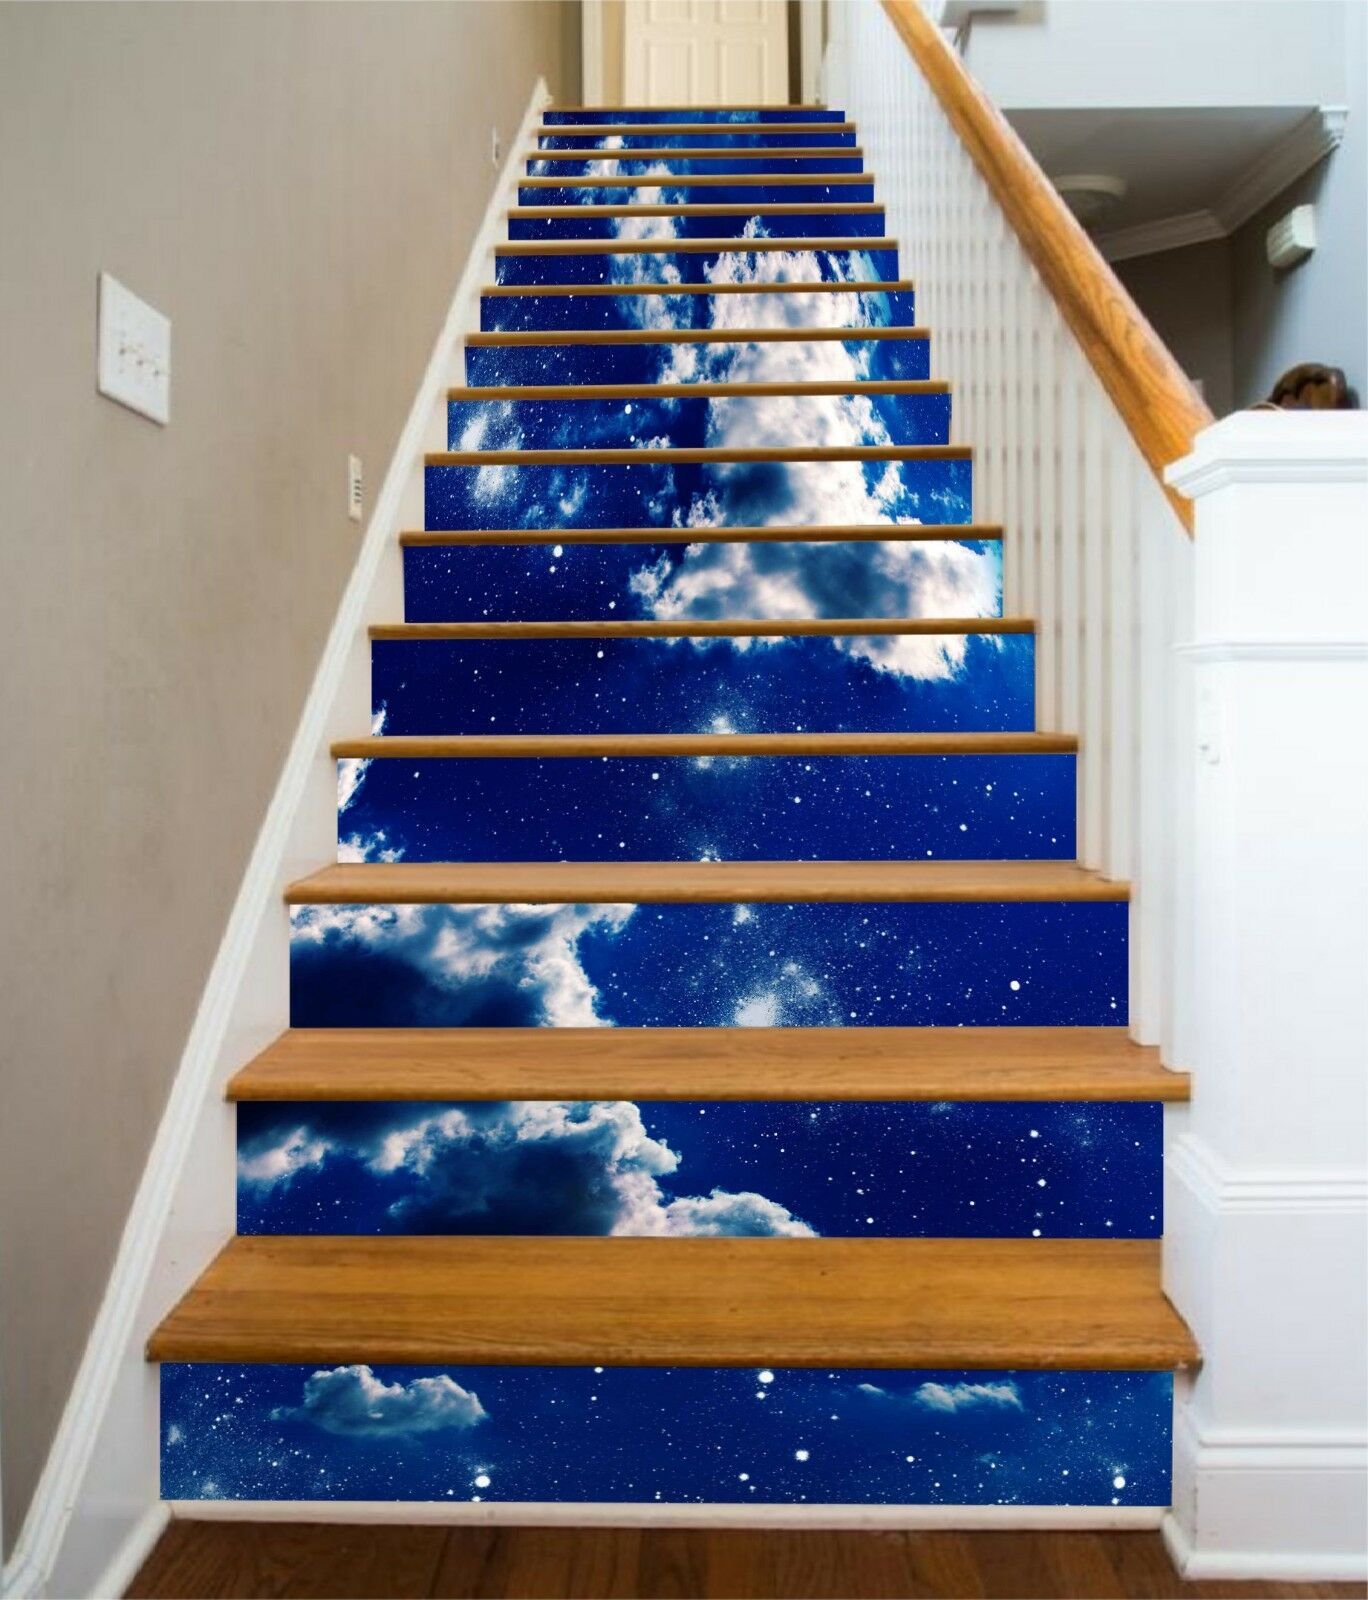 3D Bule Sky Clouds Stair Risers Decoration Photo Mural Vinyl Decal Wallpaper US